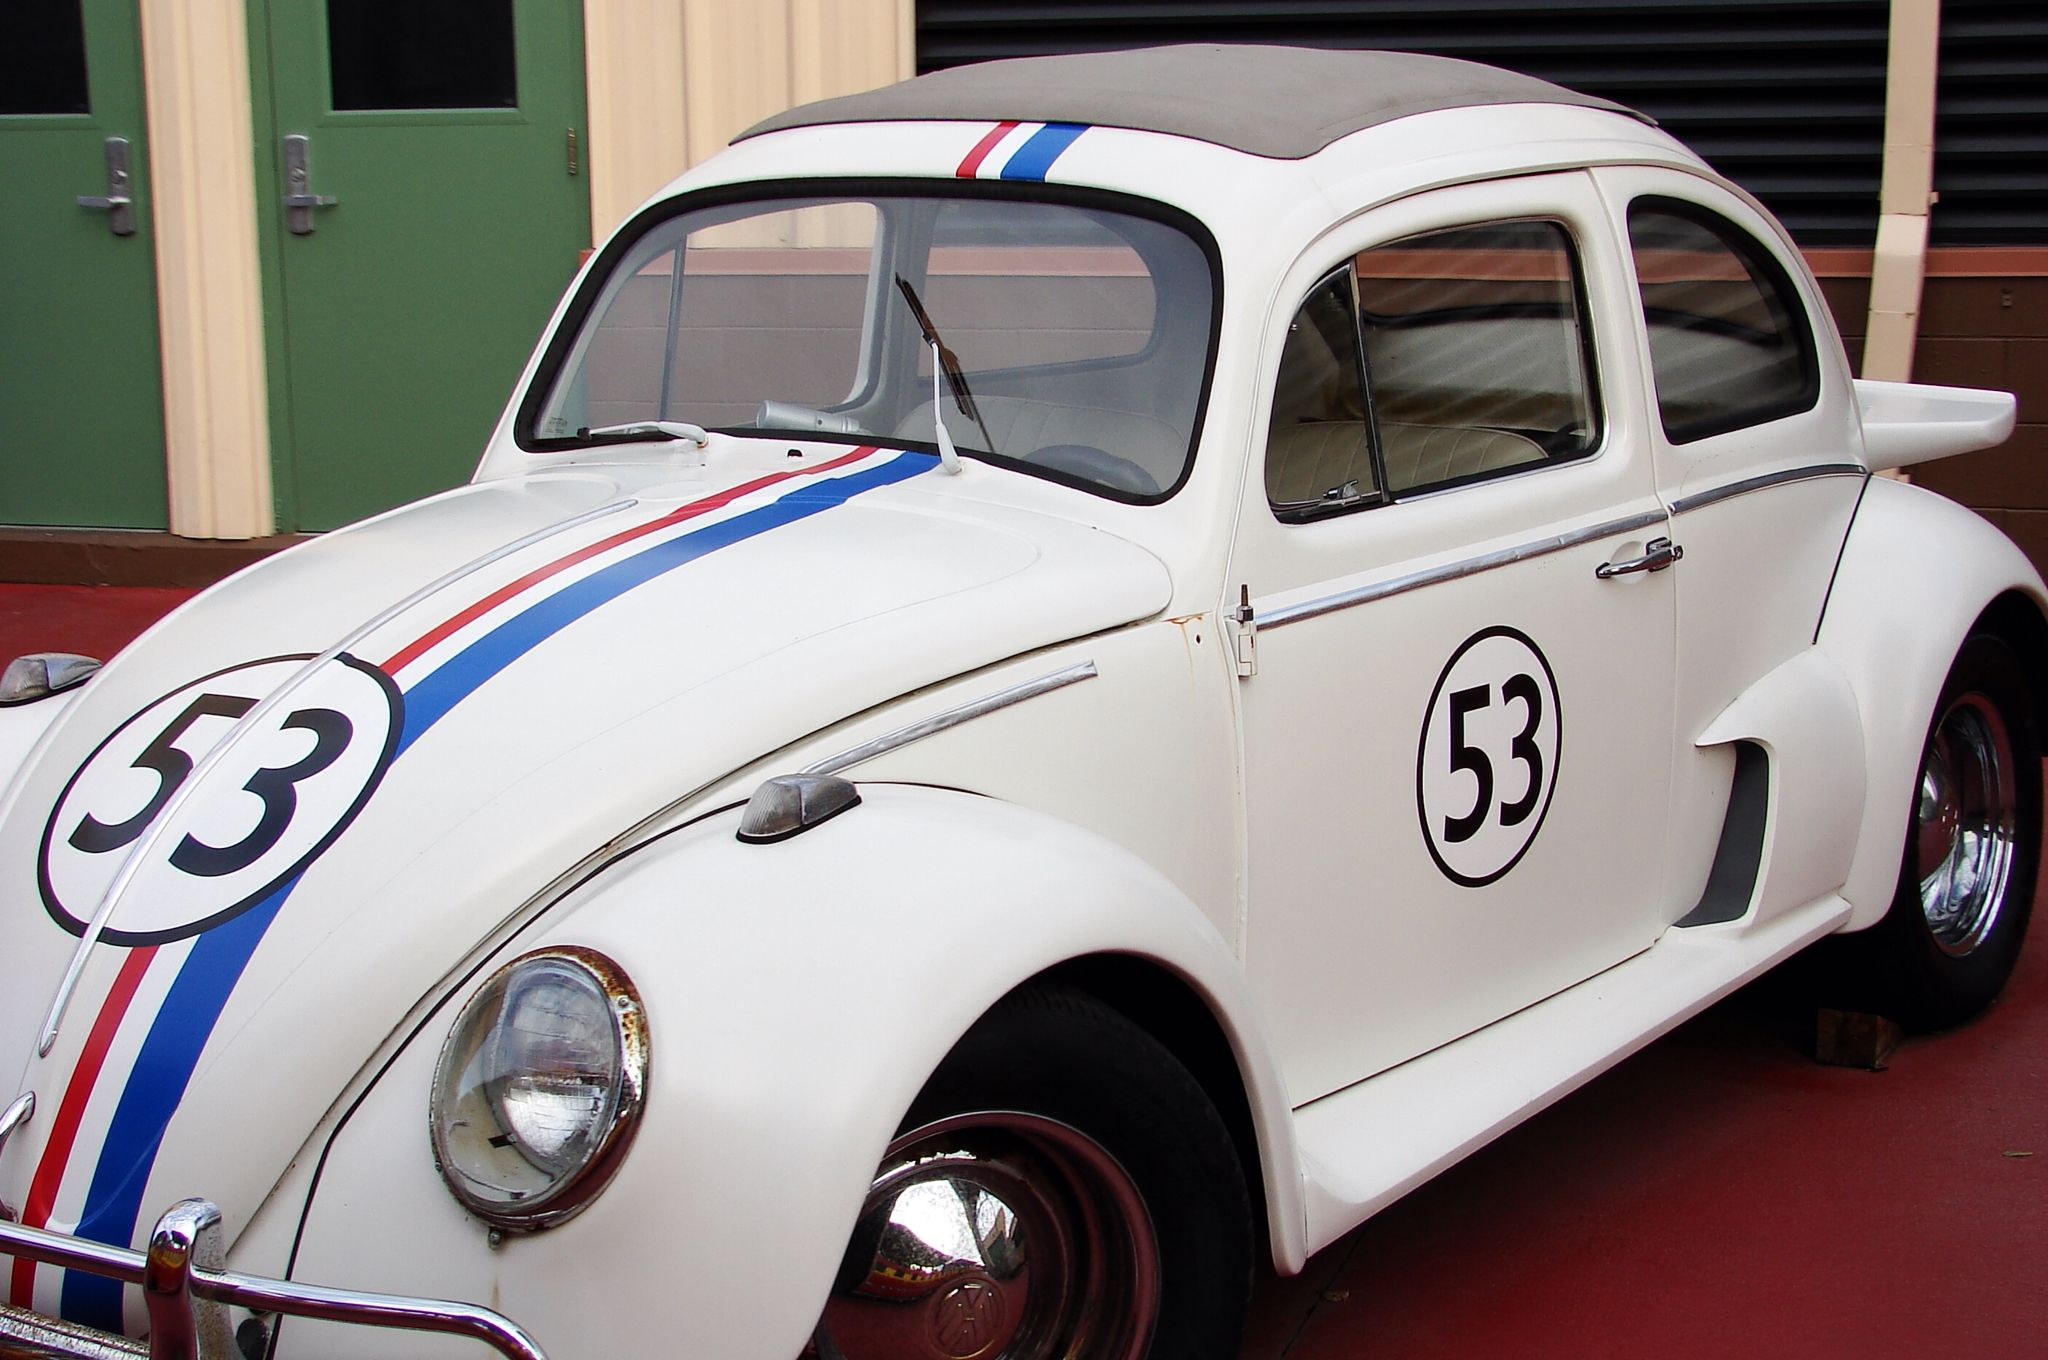 Design of beetle car - Find This Pin And More On Cars Etc